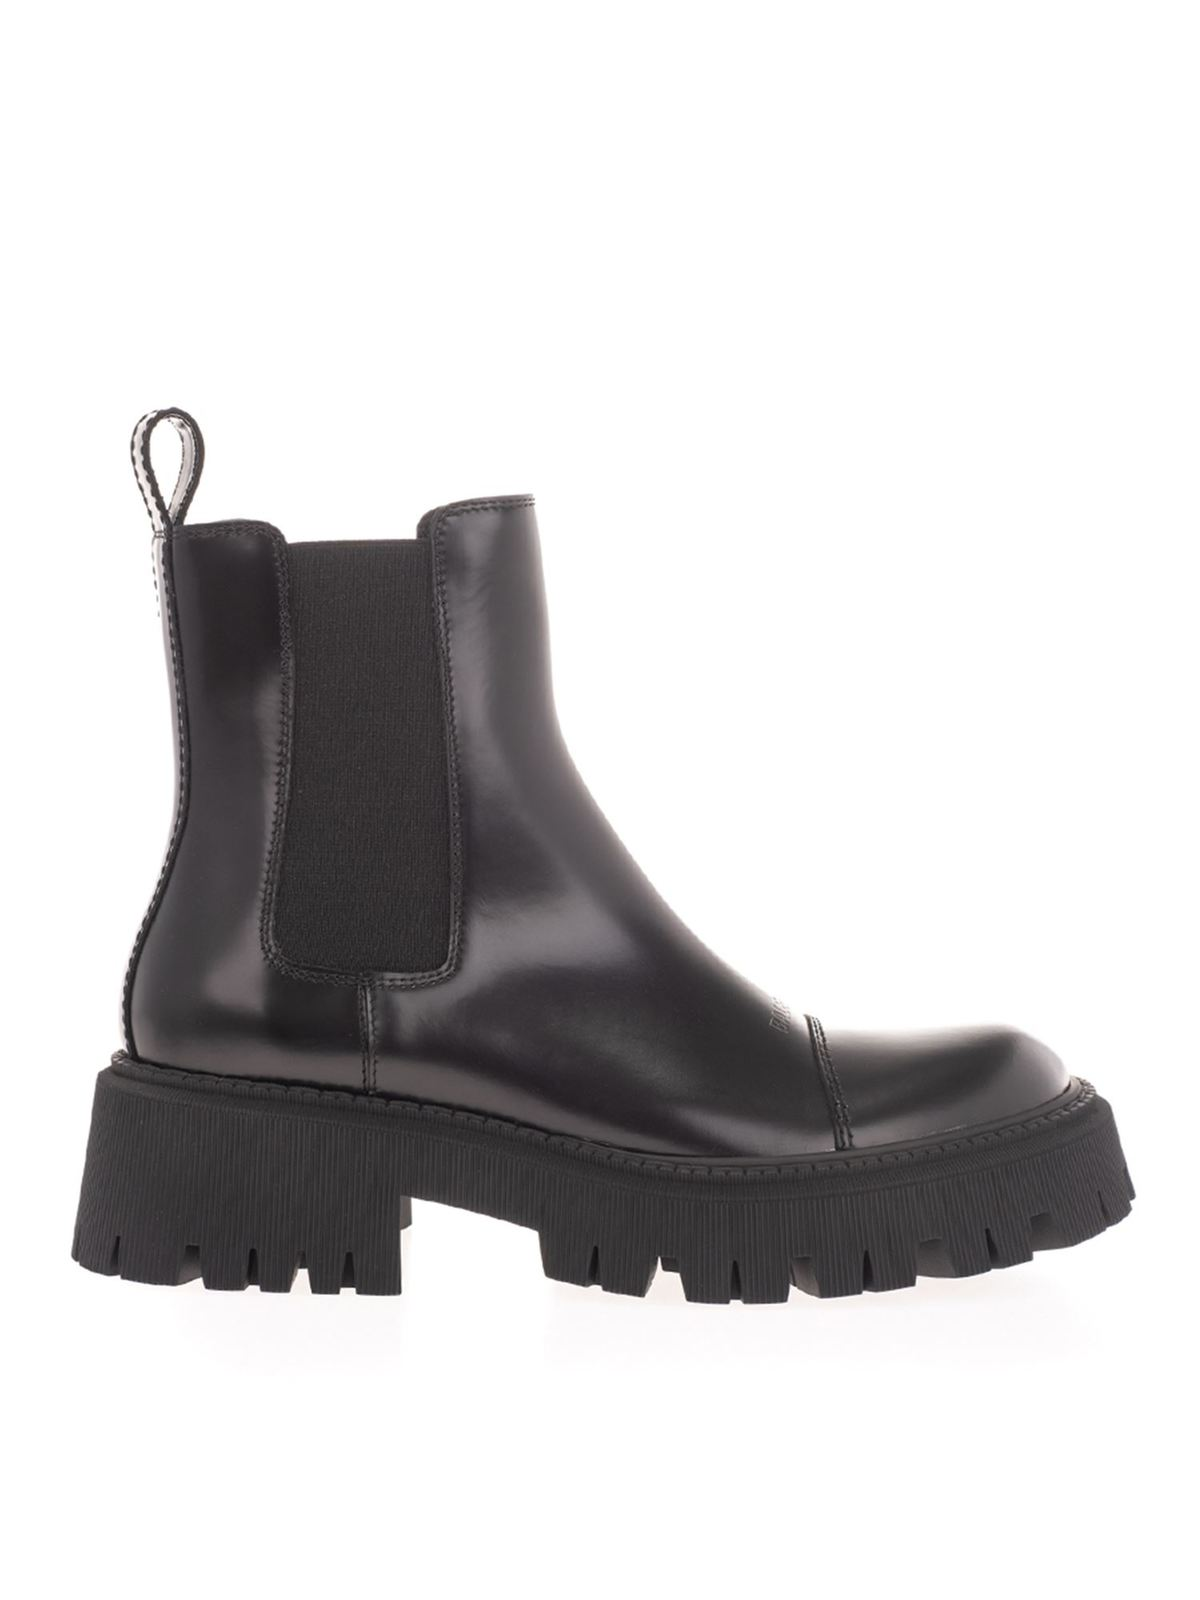 BALENCIAGA TRACTOR 20 MM ANCKLE BOOTS IN BLACK